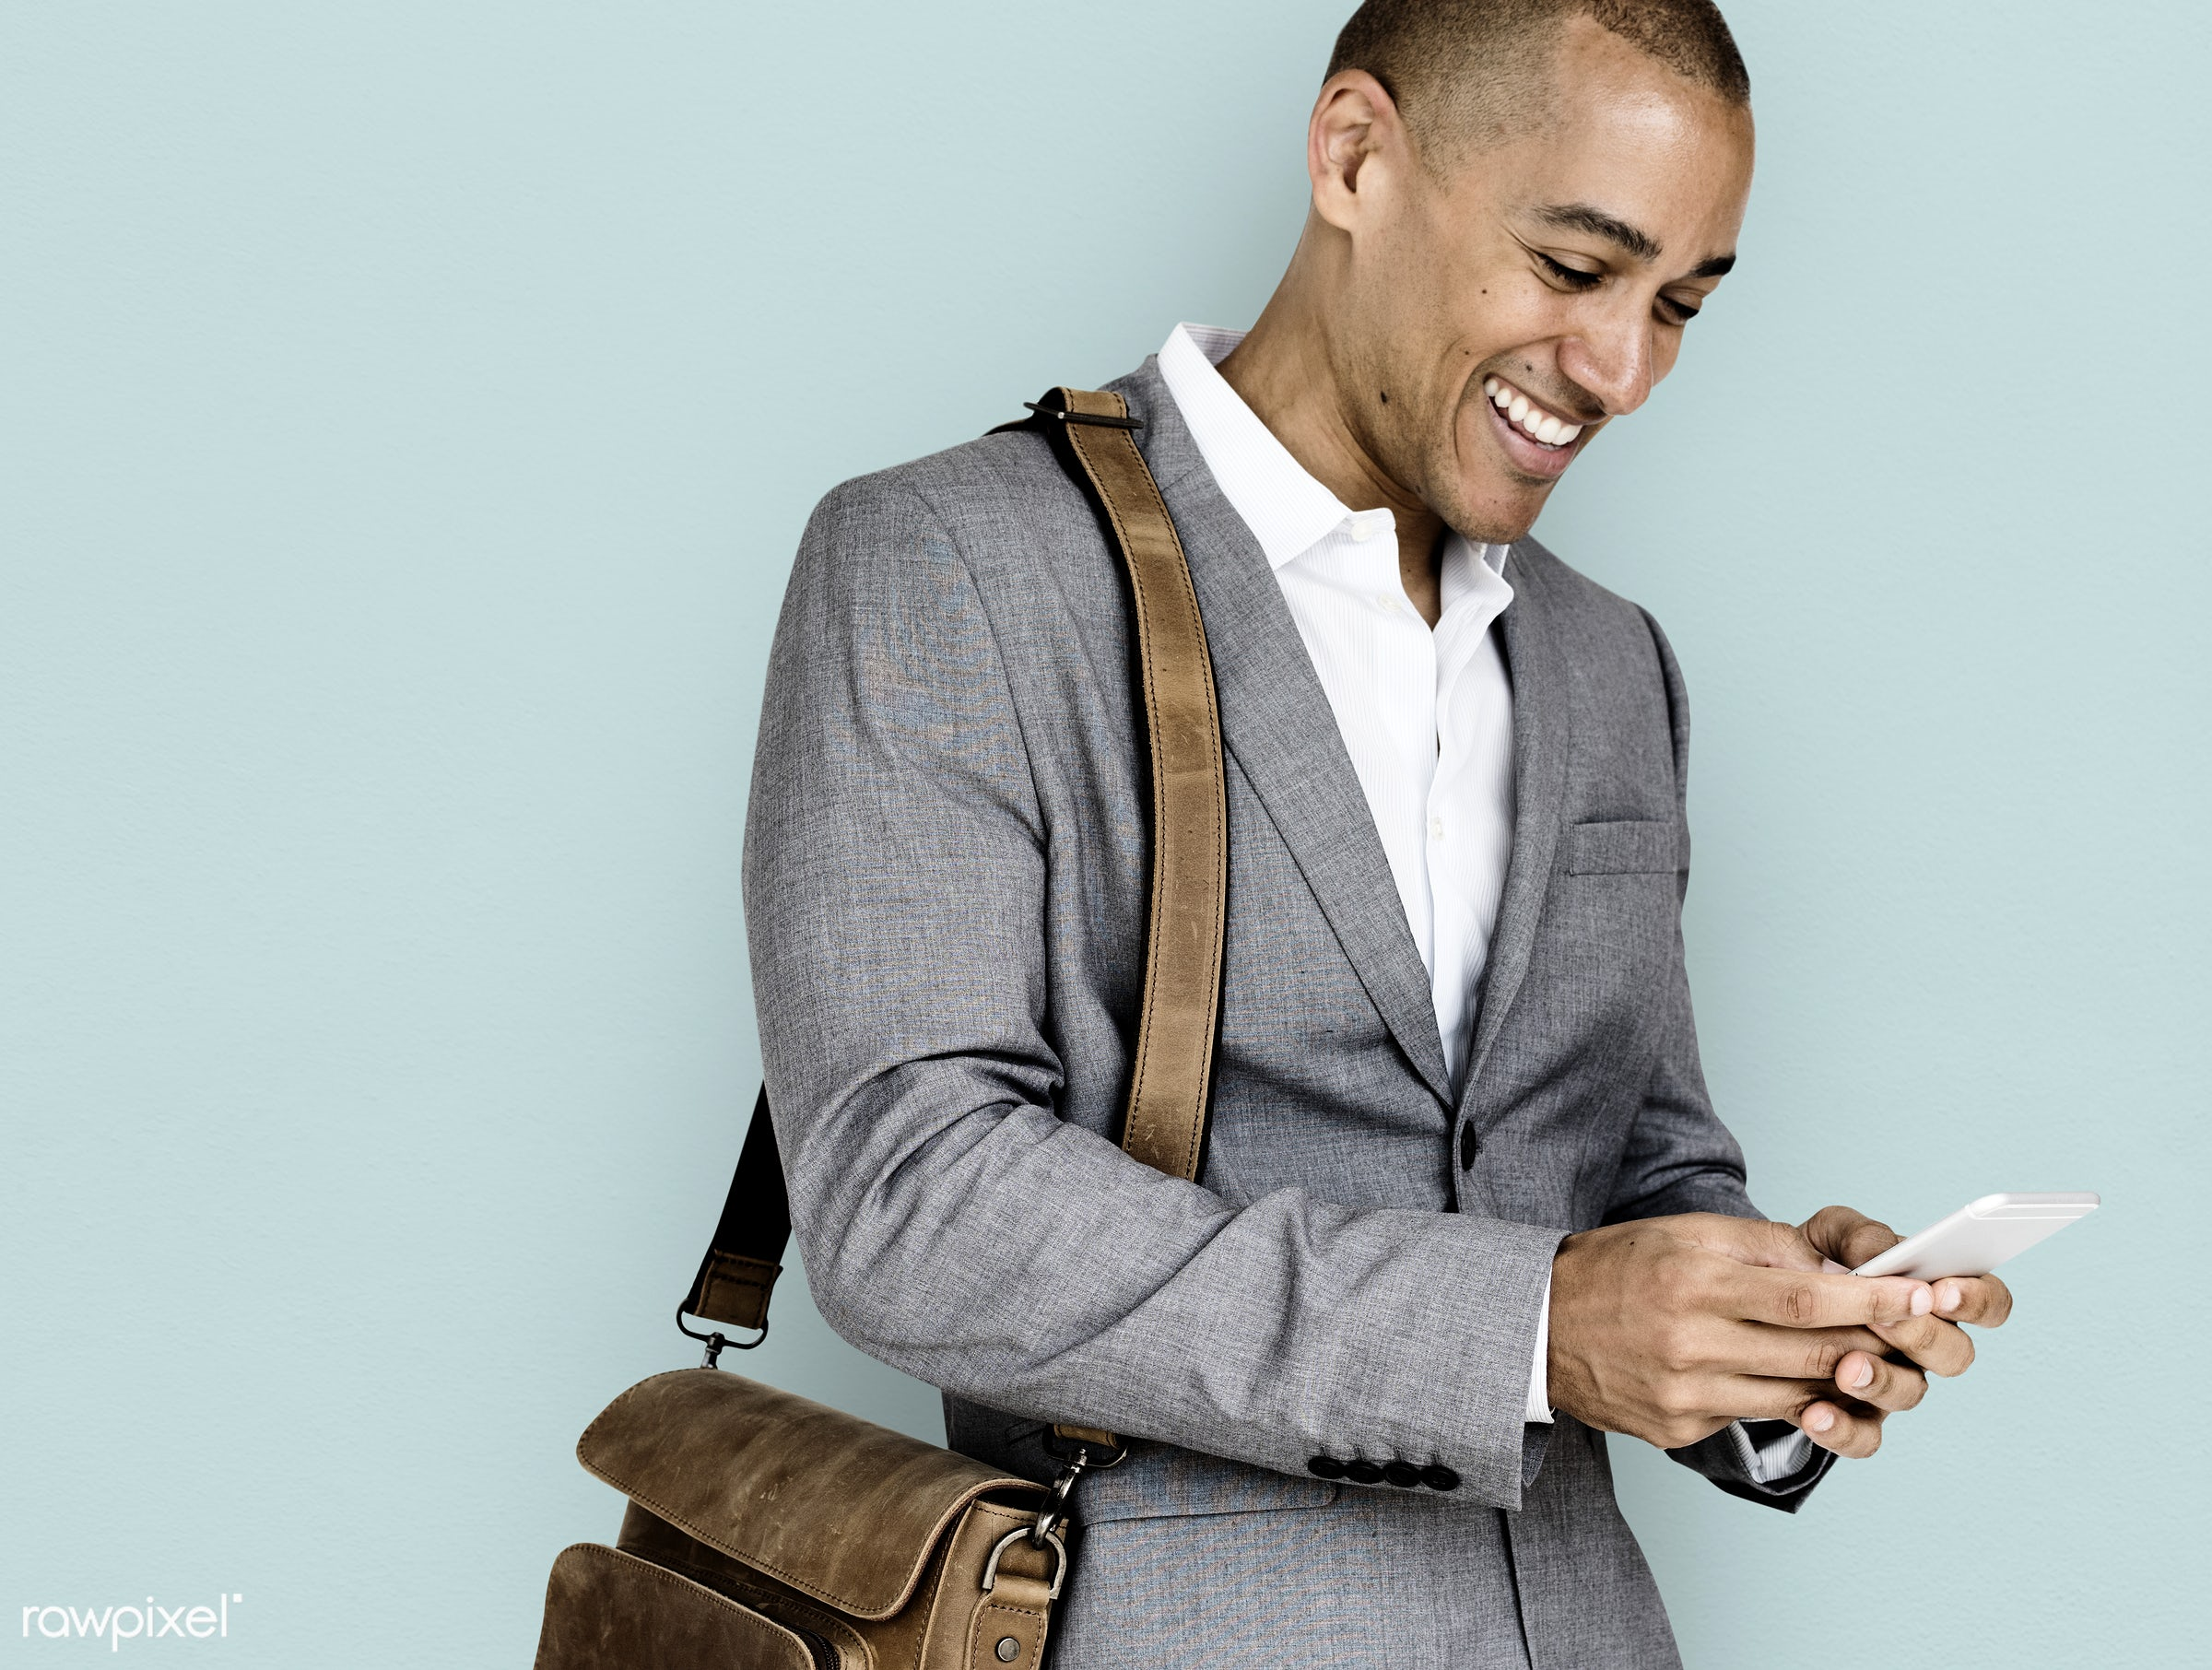 expression, studio, person, phone, business wear, messenger bag, joy, people, joyous, happy, messaging, smile, cheerful,...